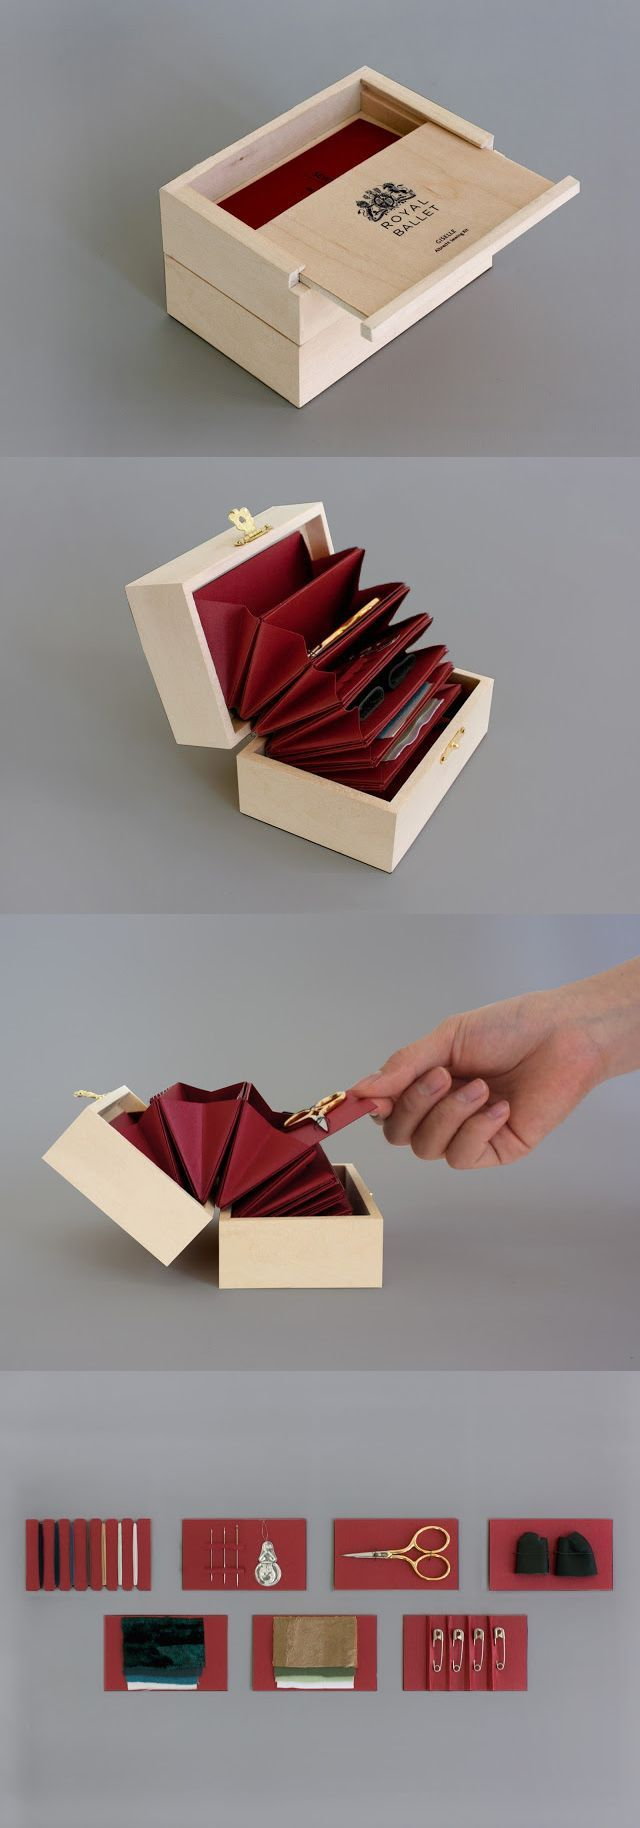 Ballerino Sewing Kit by Stacy Park